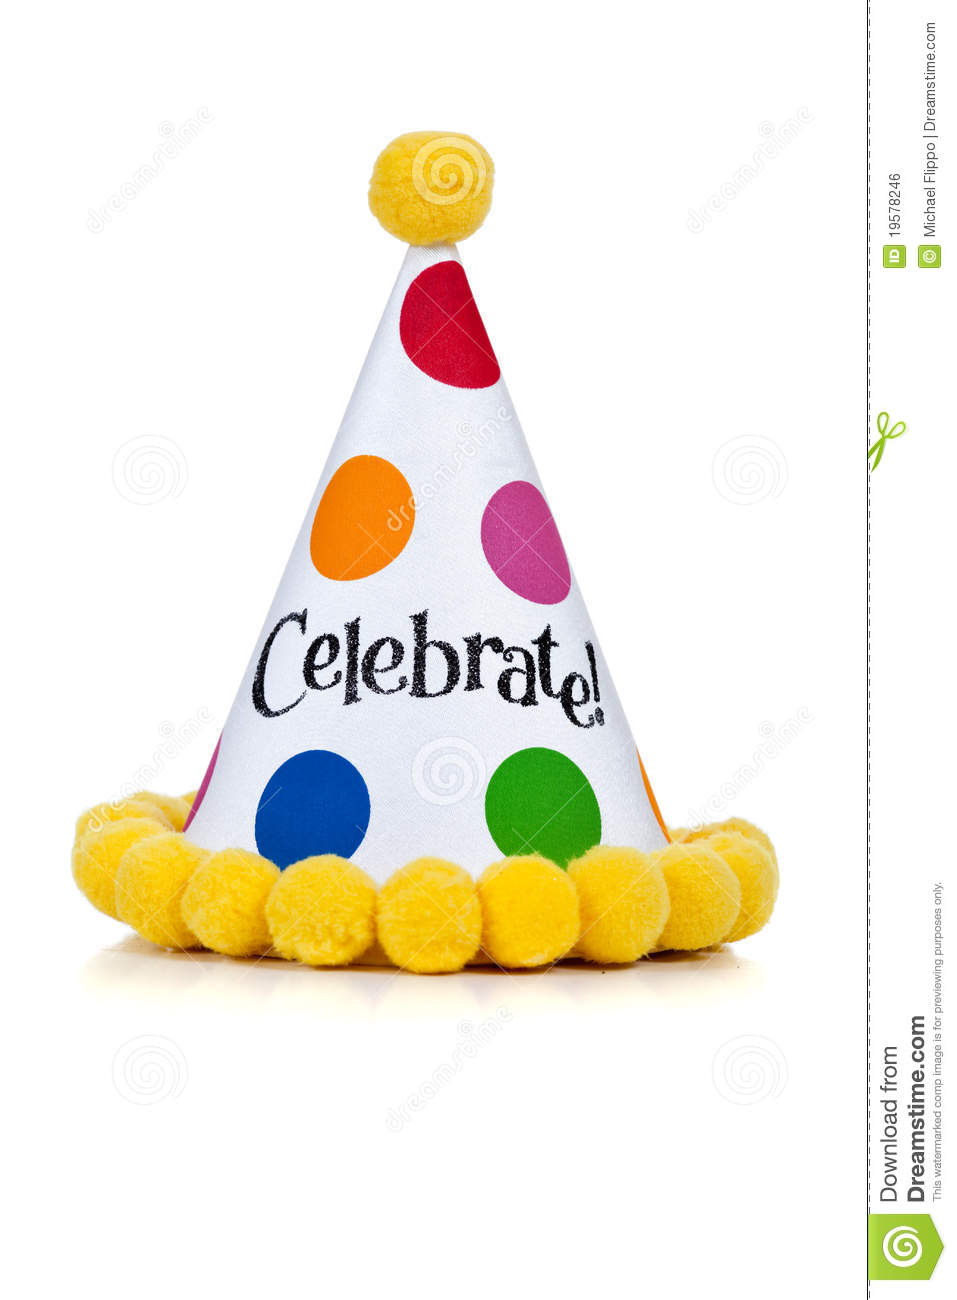 animals in birthday hats images